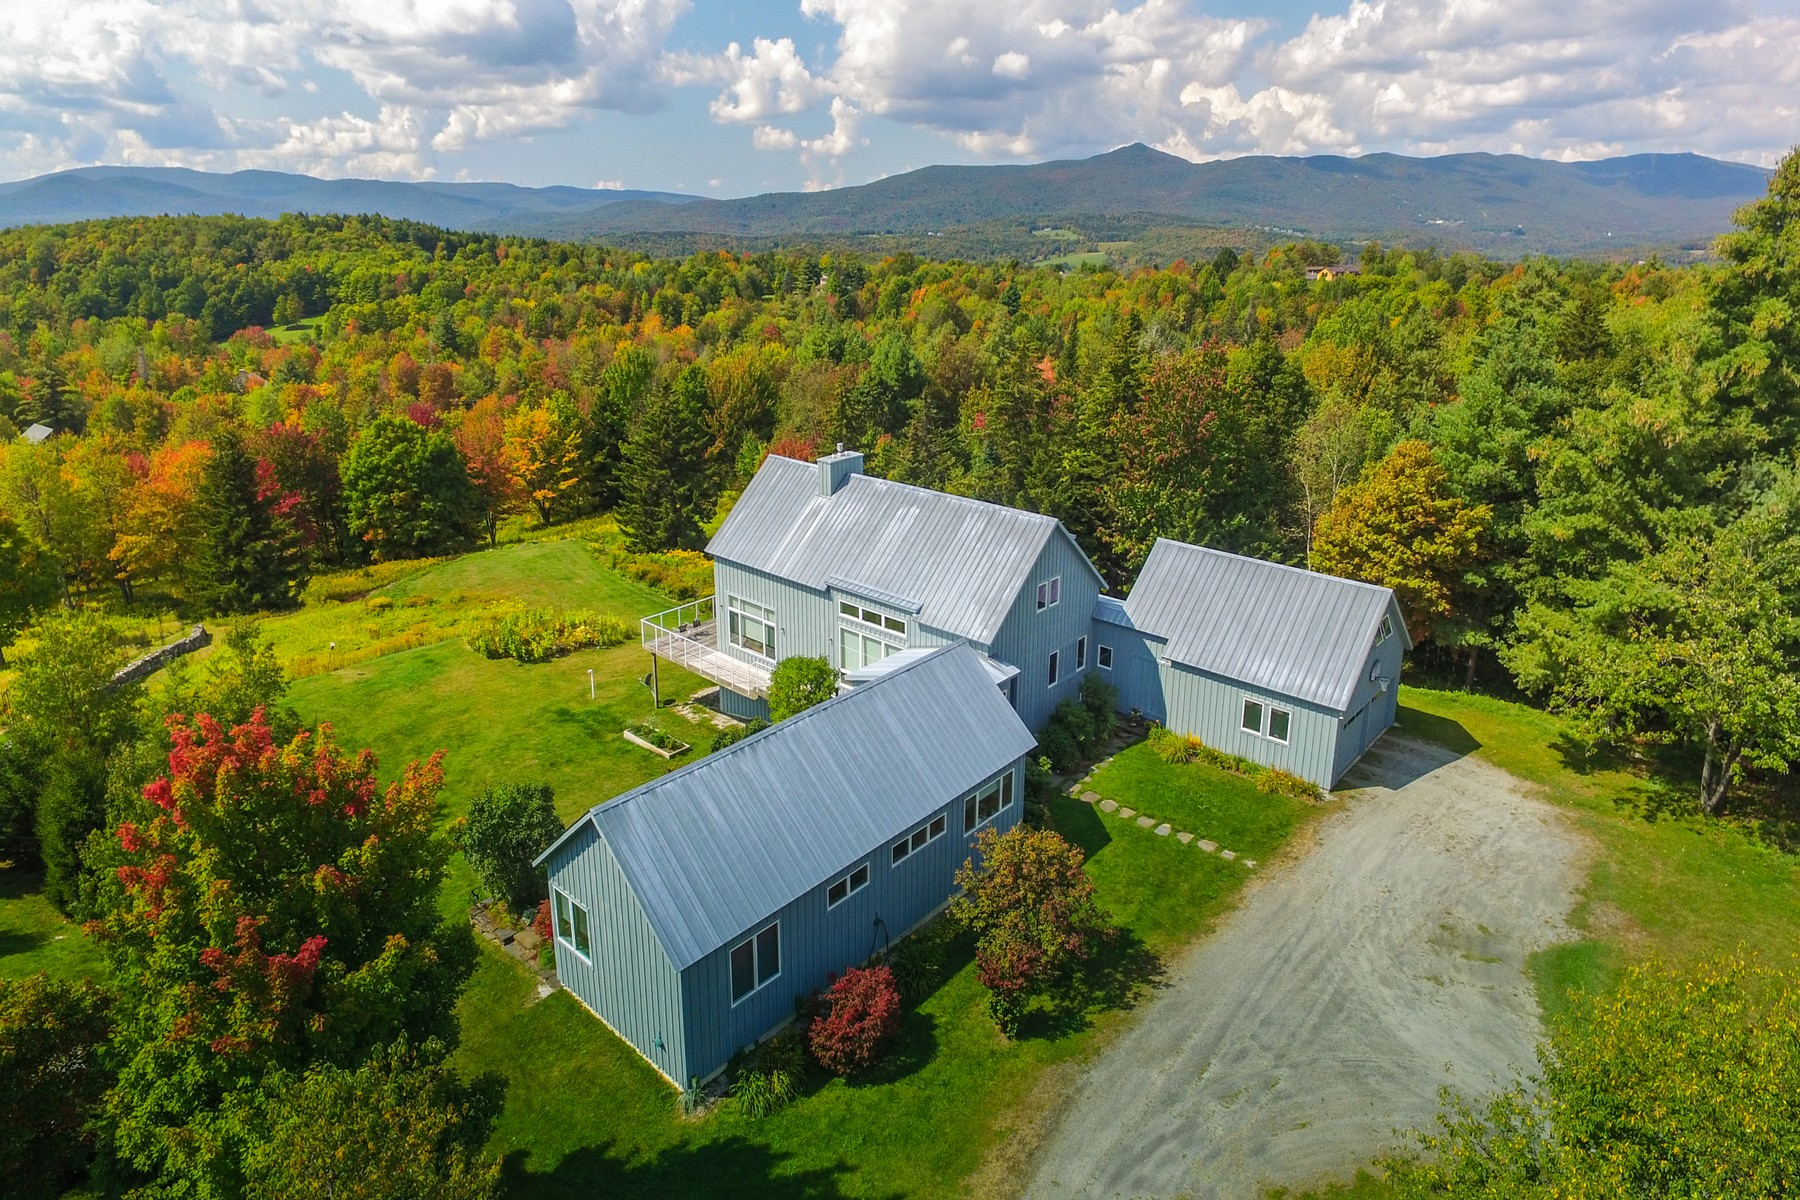 Single Family Homes for Sale at 81 Top of Hill, Wilmington 81 Top of Hill Wilmington, Vermont 05363 United States